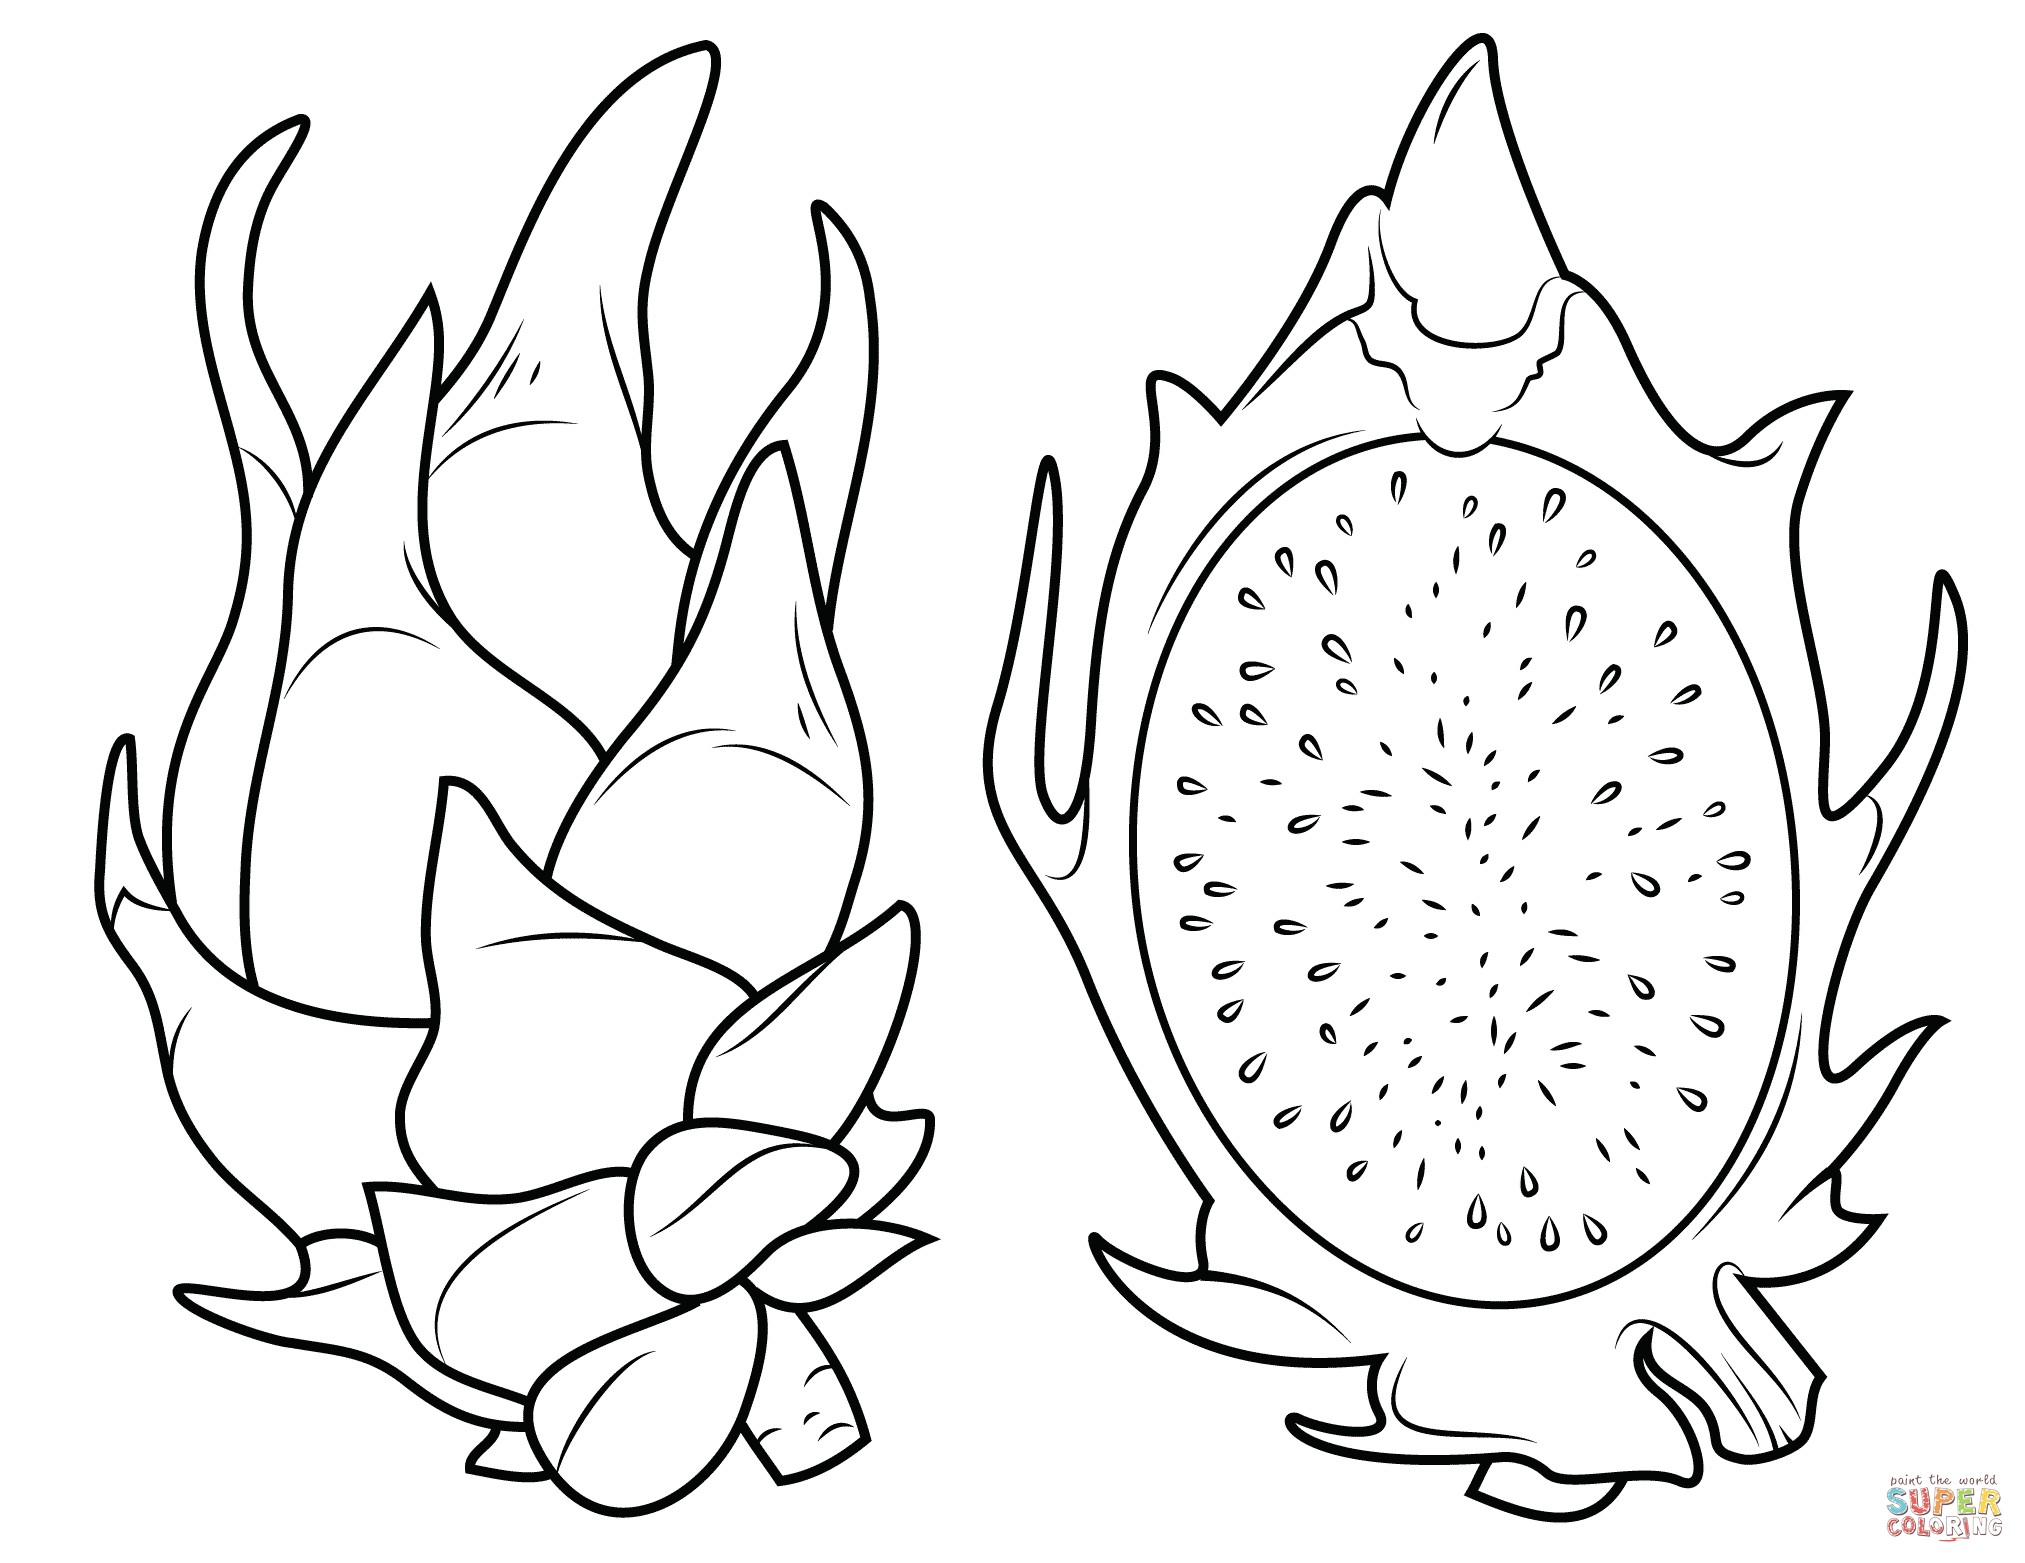 Avocado Coloring Page At Getcolorings